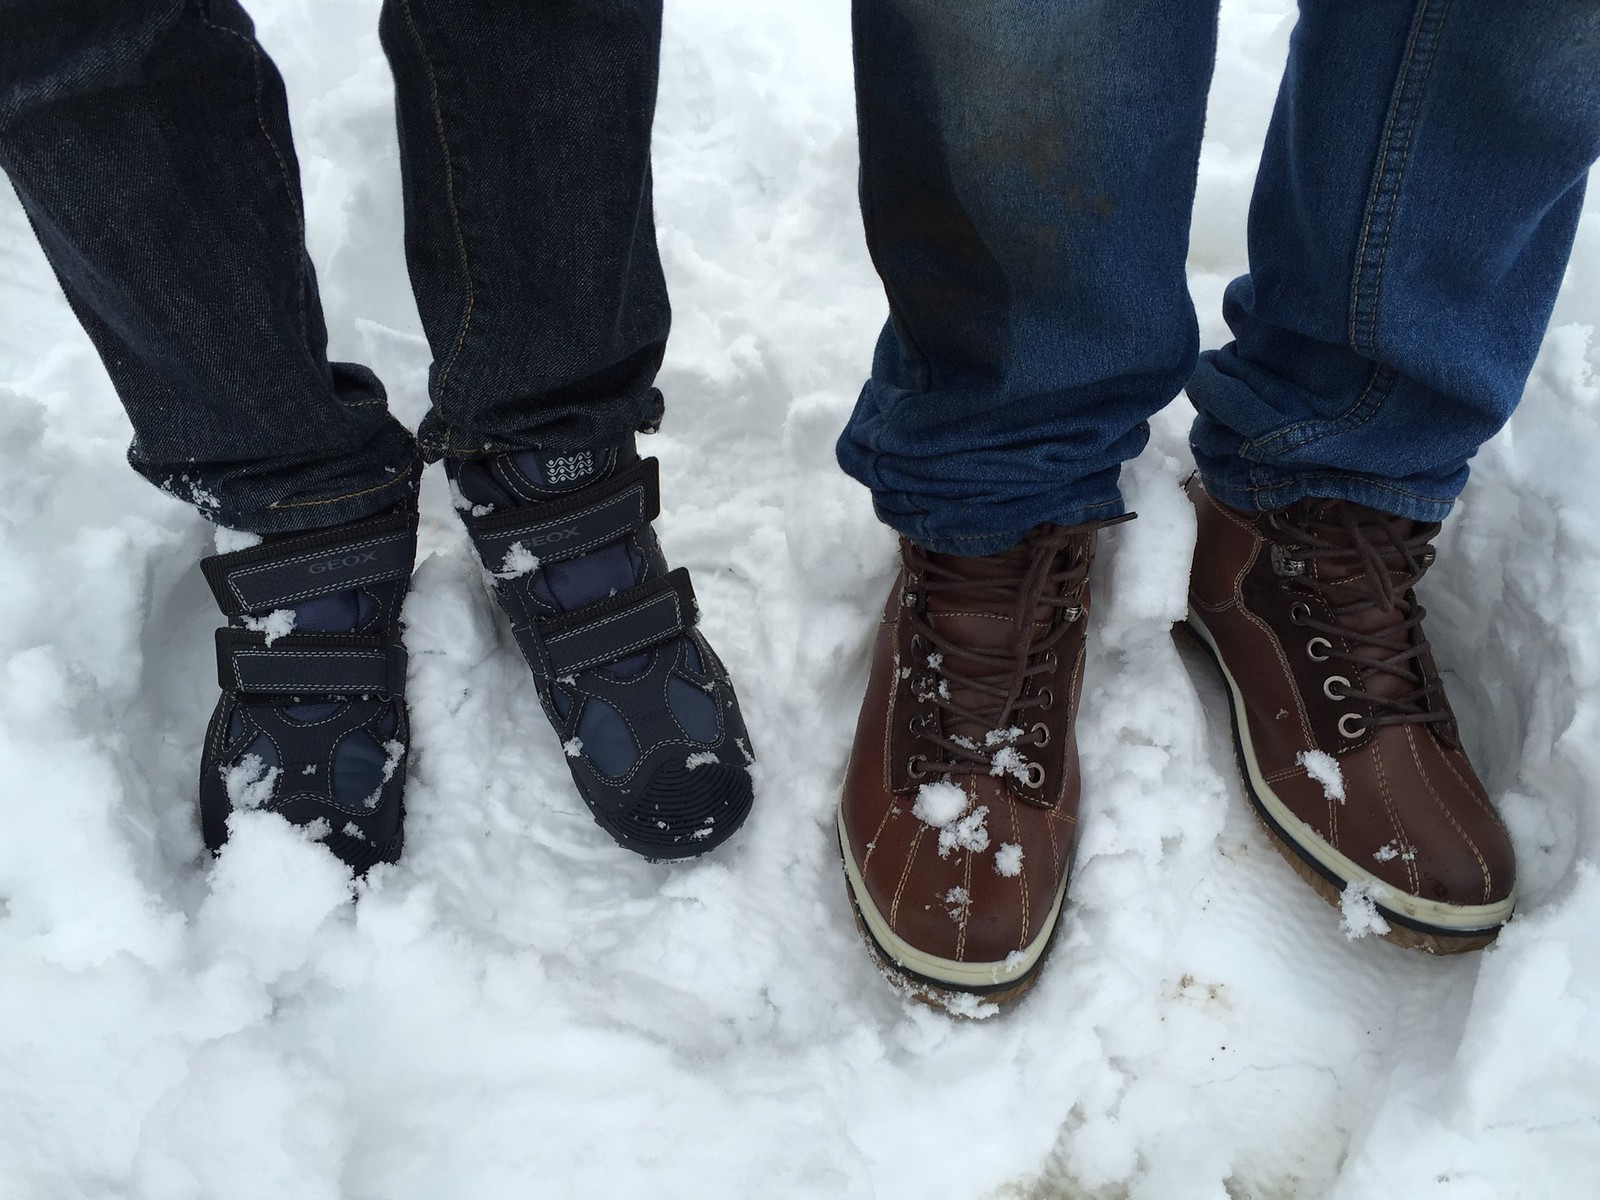 new boots in winter snow